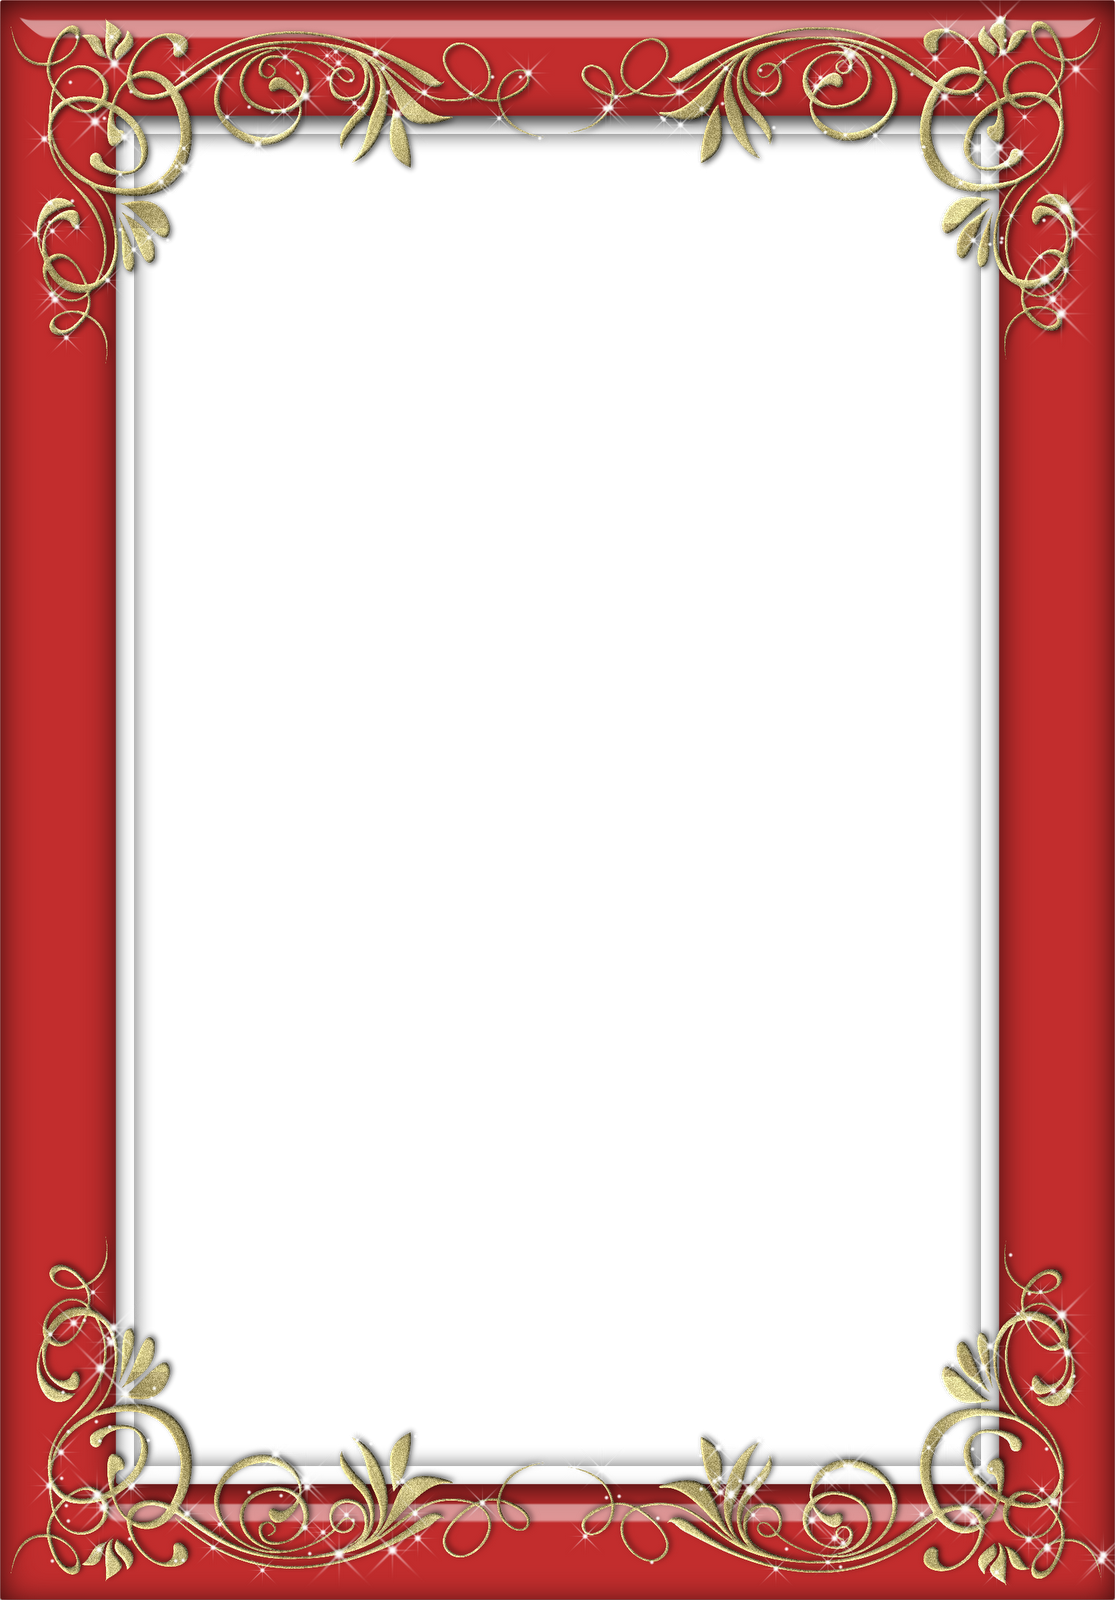 Lots Amp Lots Of Free Clipart Lots Of Frames Holiday Red